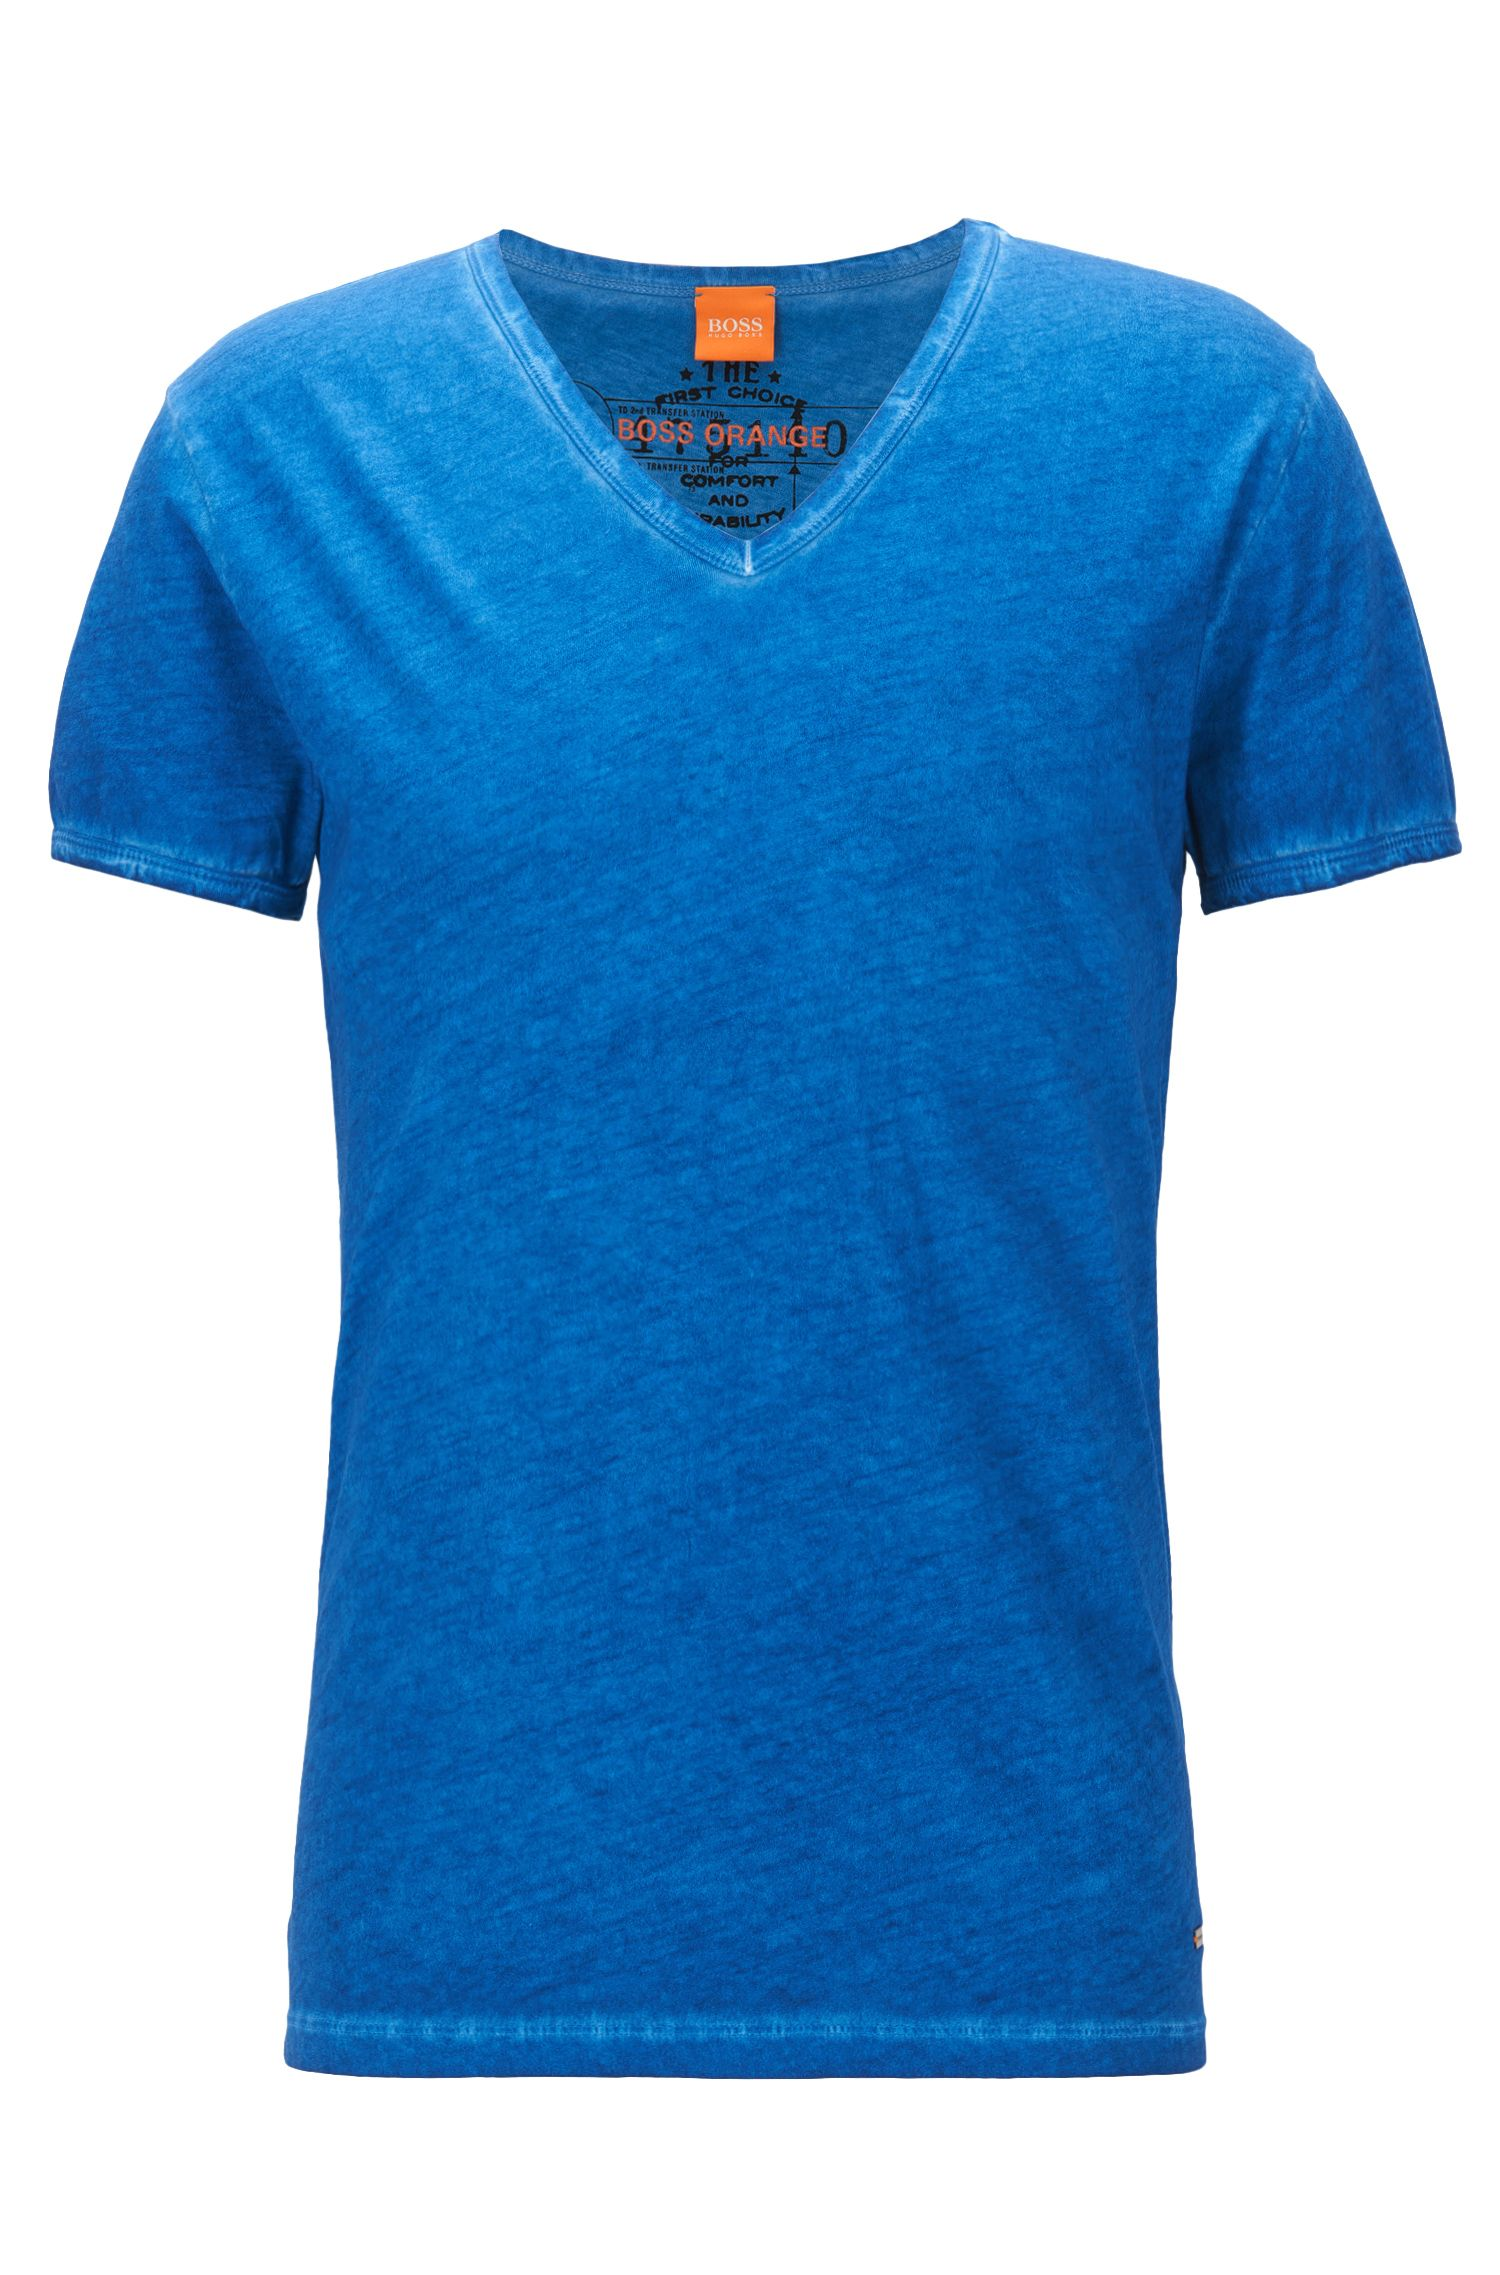 Regular-fit T-shirt in garment-dyed cotton